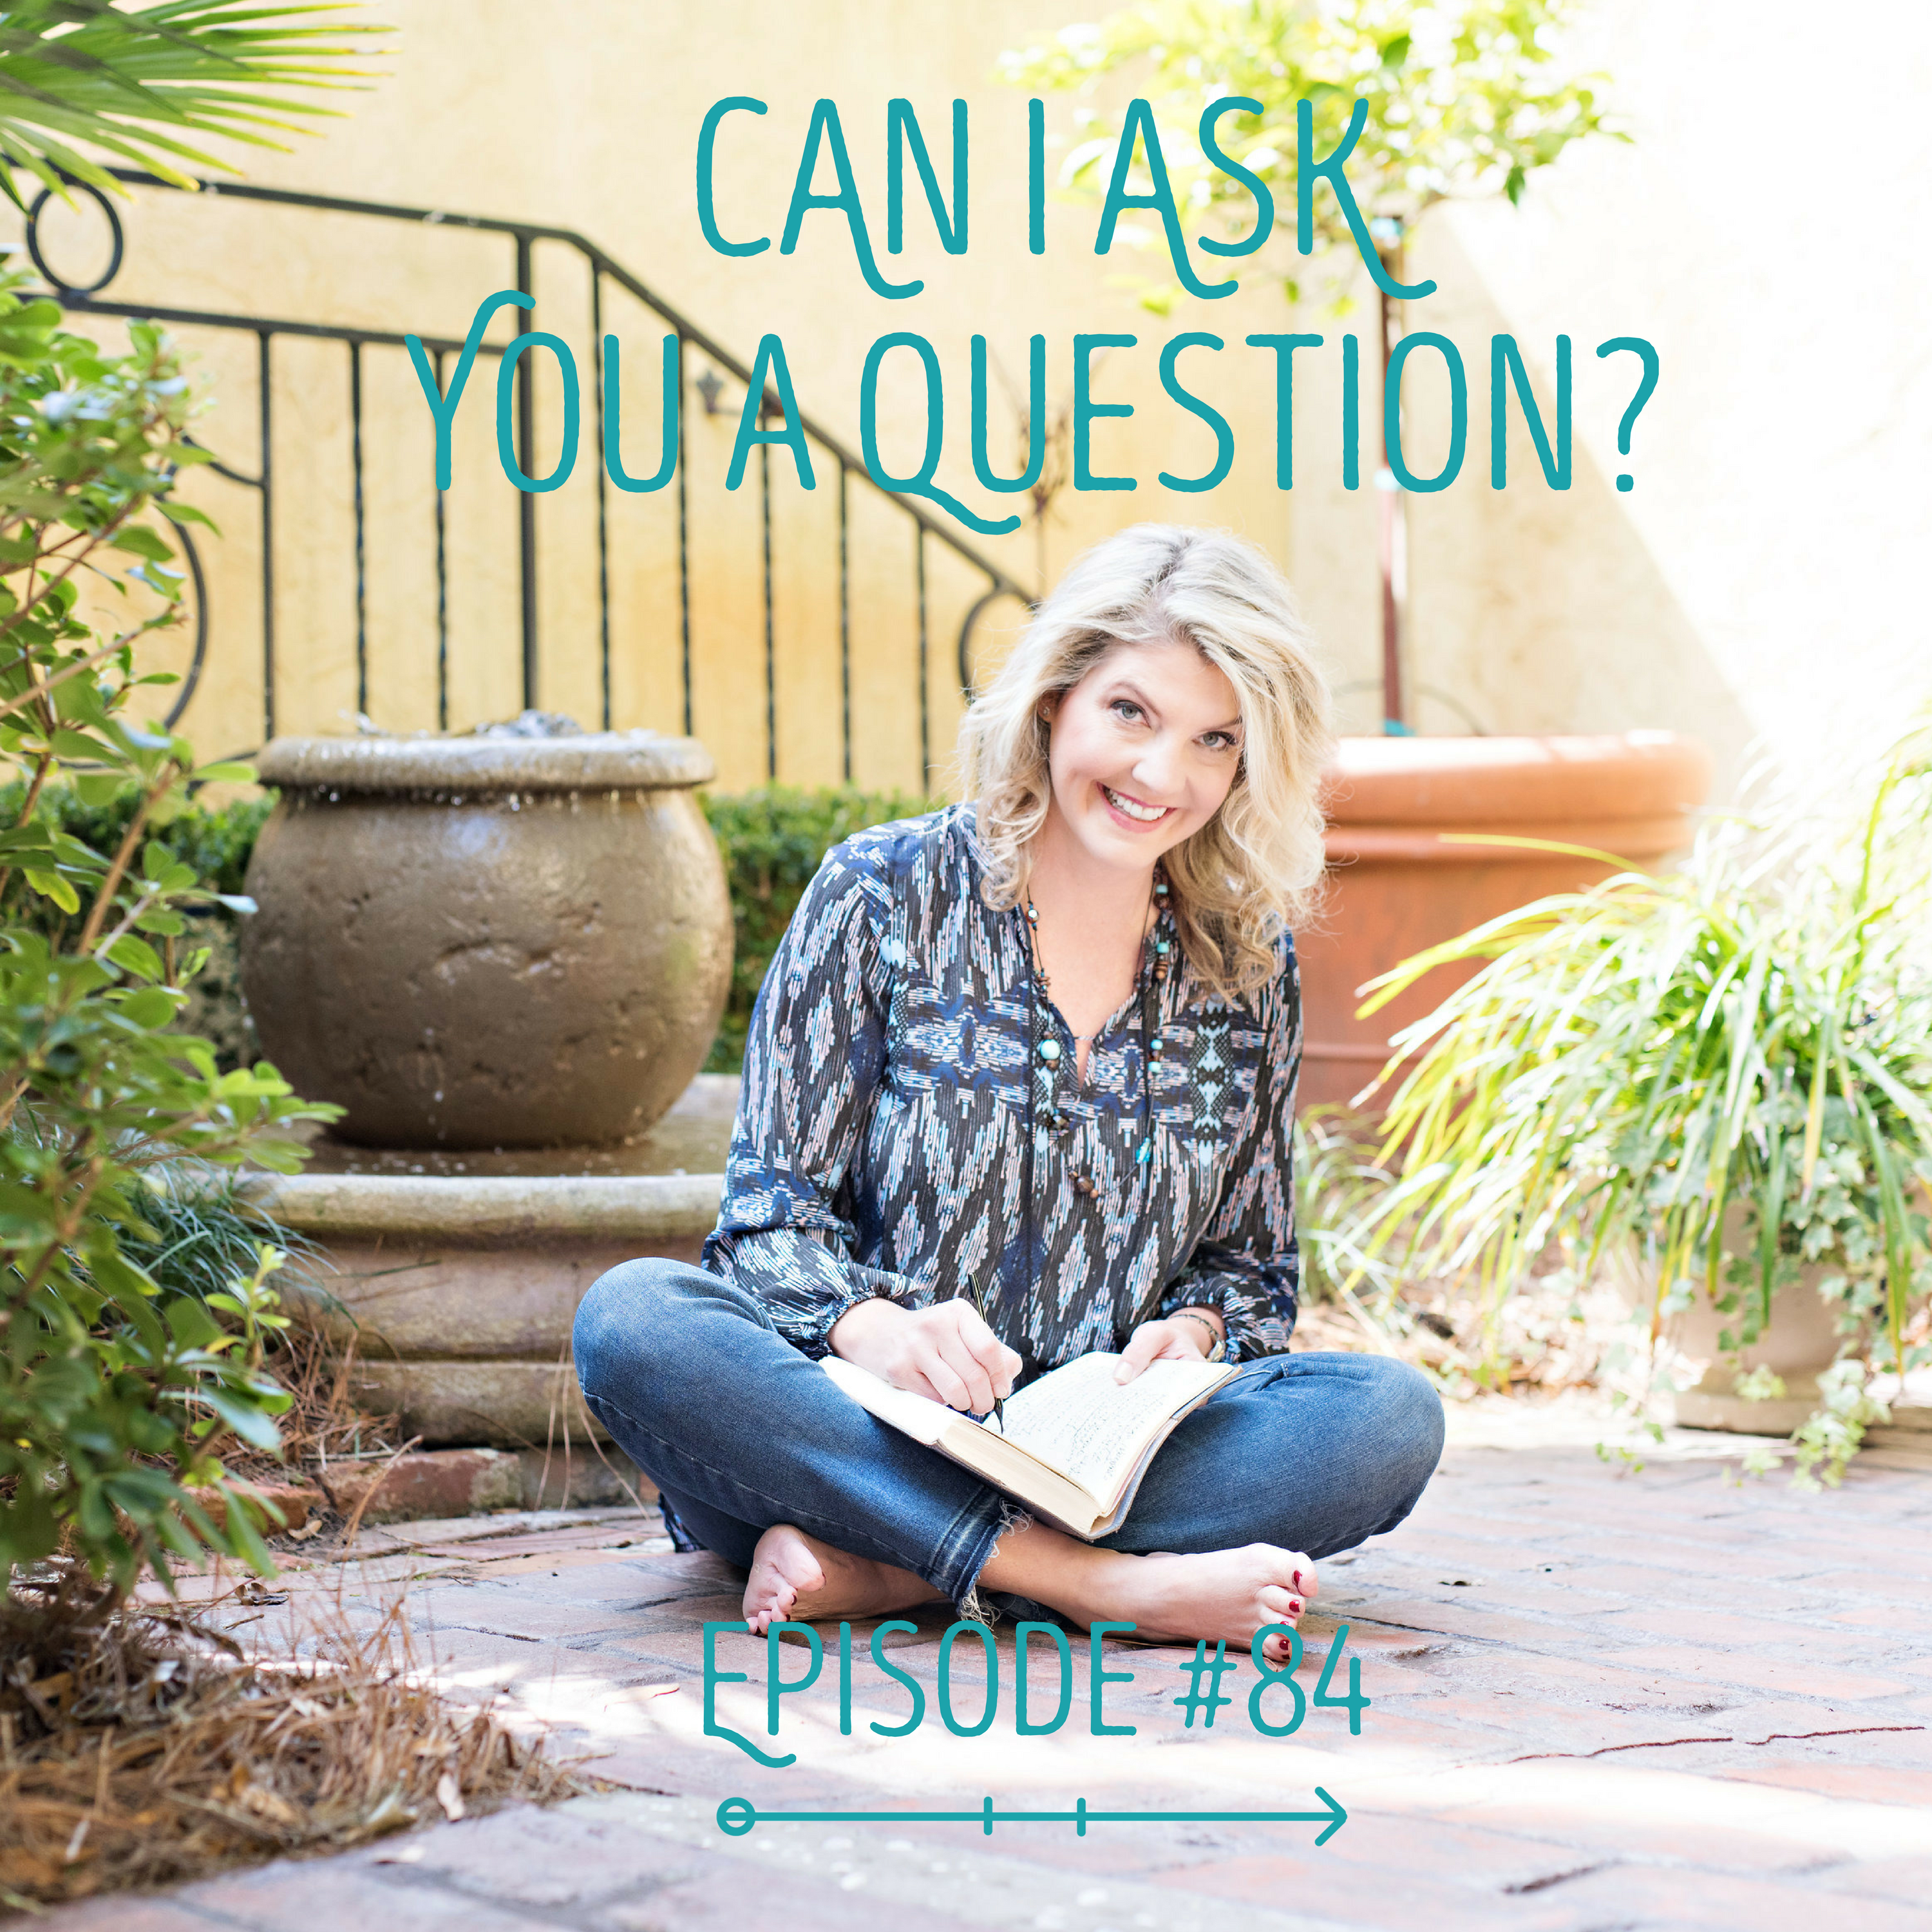 Can I ask you a question? : EPISODE 84